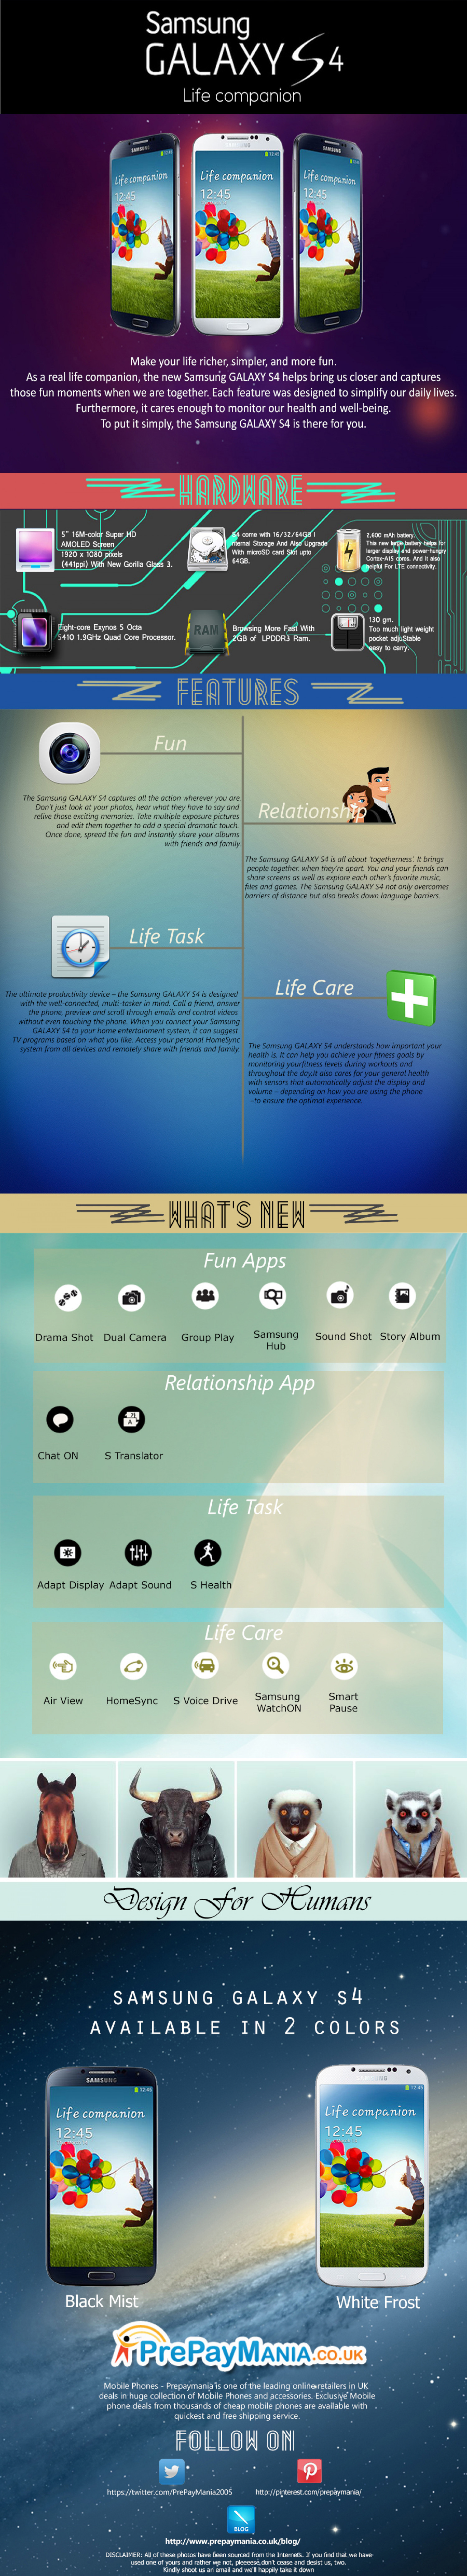 Samsung Galaxy S4 Features Infographic - PrePayMania Infographic